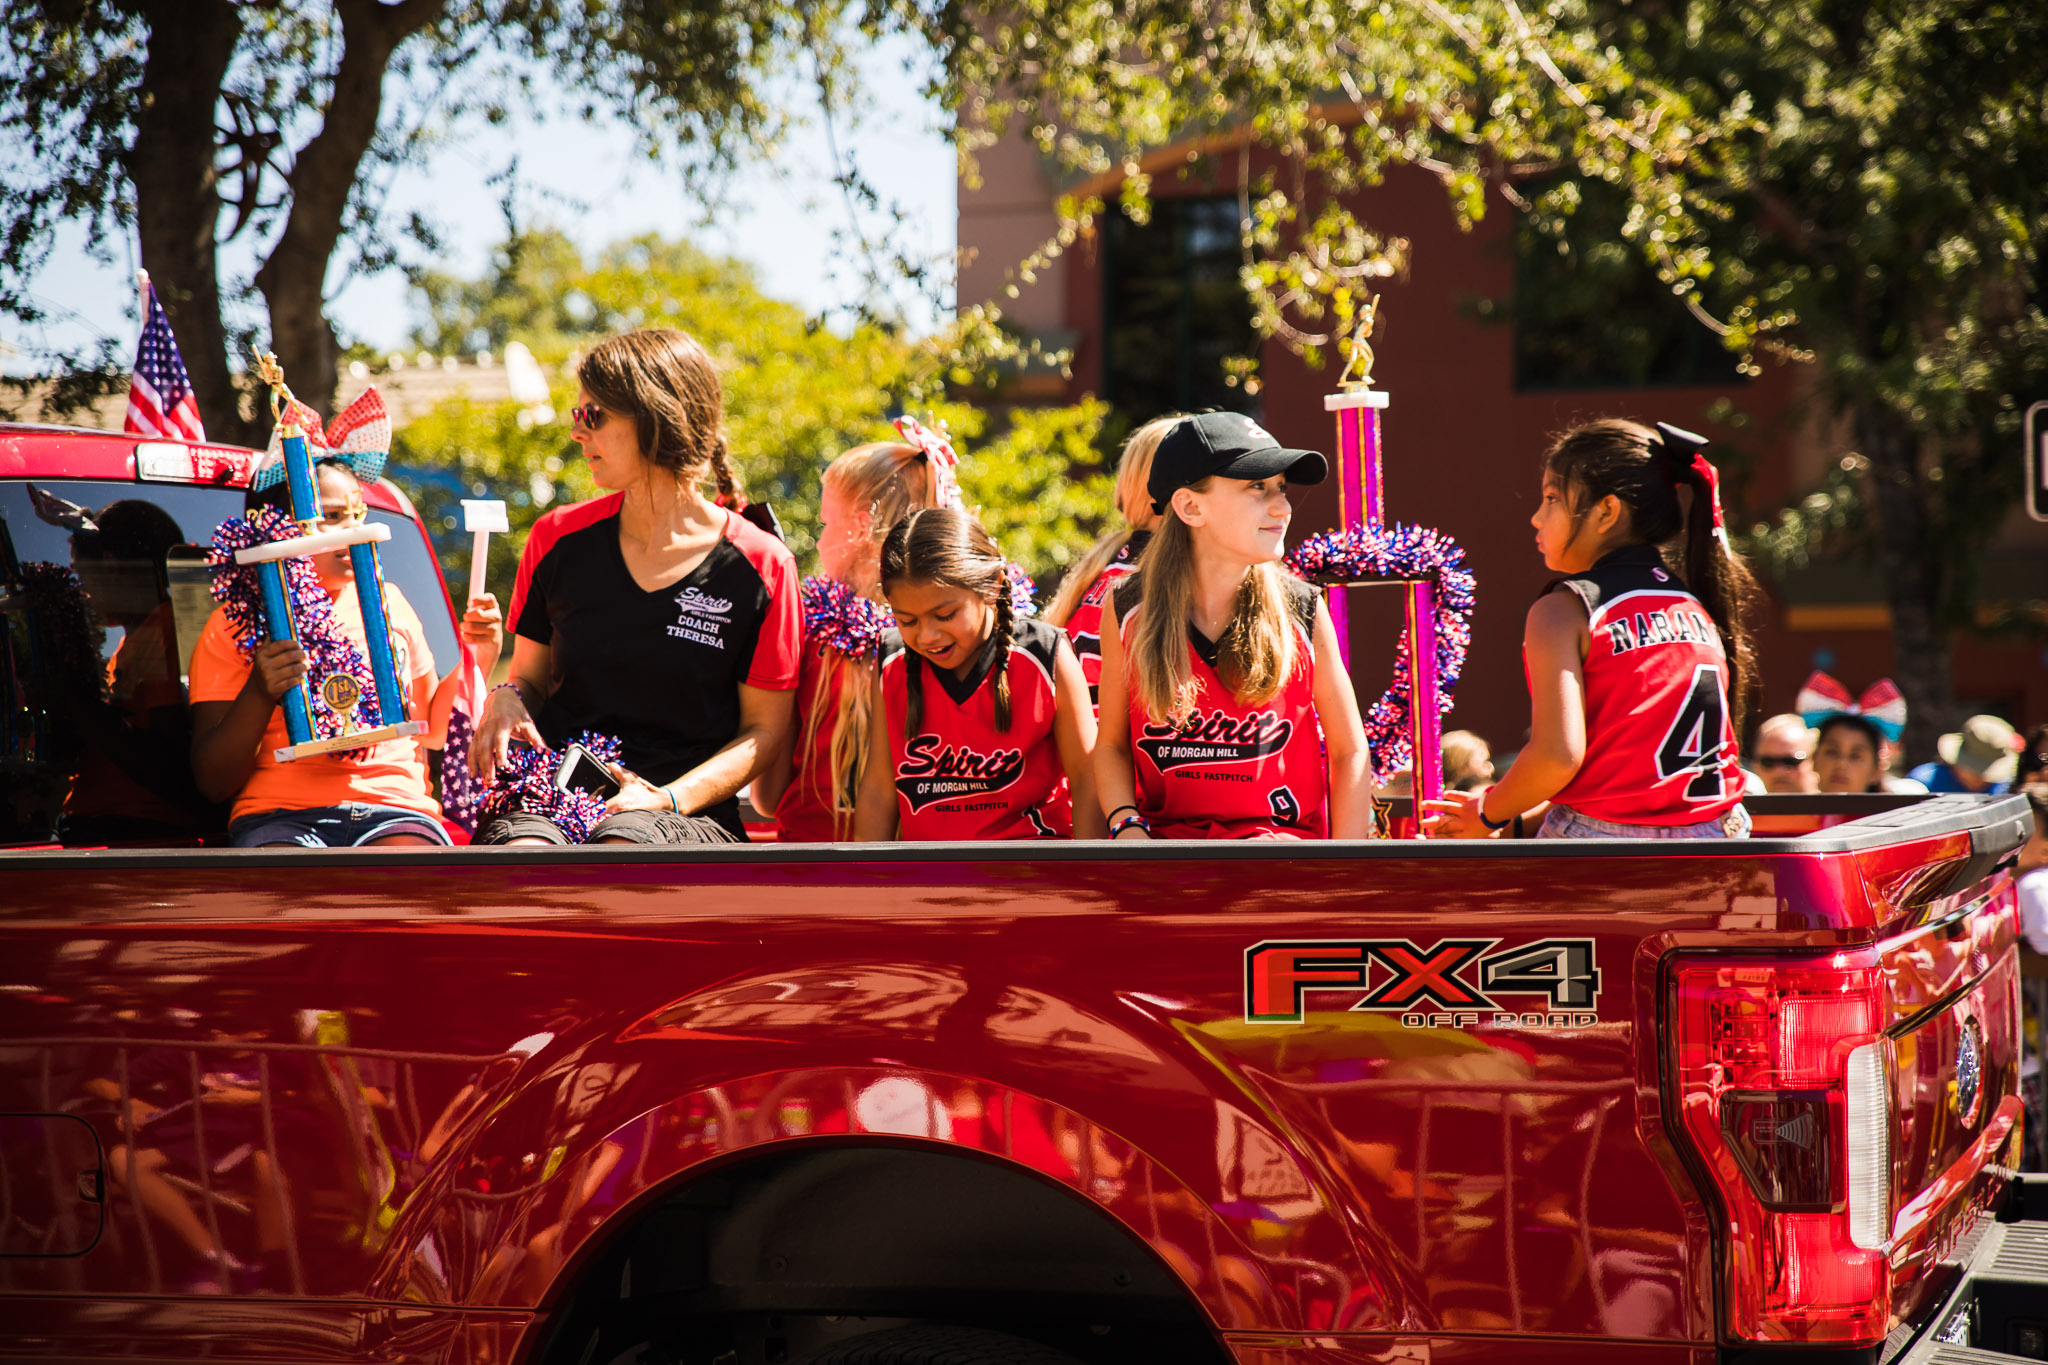 Archer_Inspired_Photography_Morgan_Hill_California_4th_of_july_parade-103.jpg